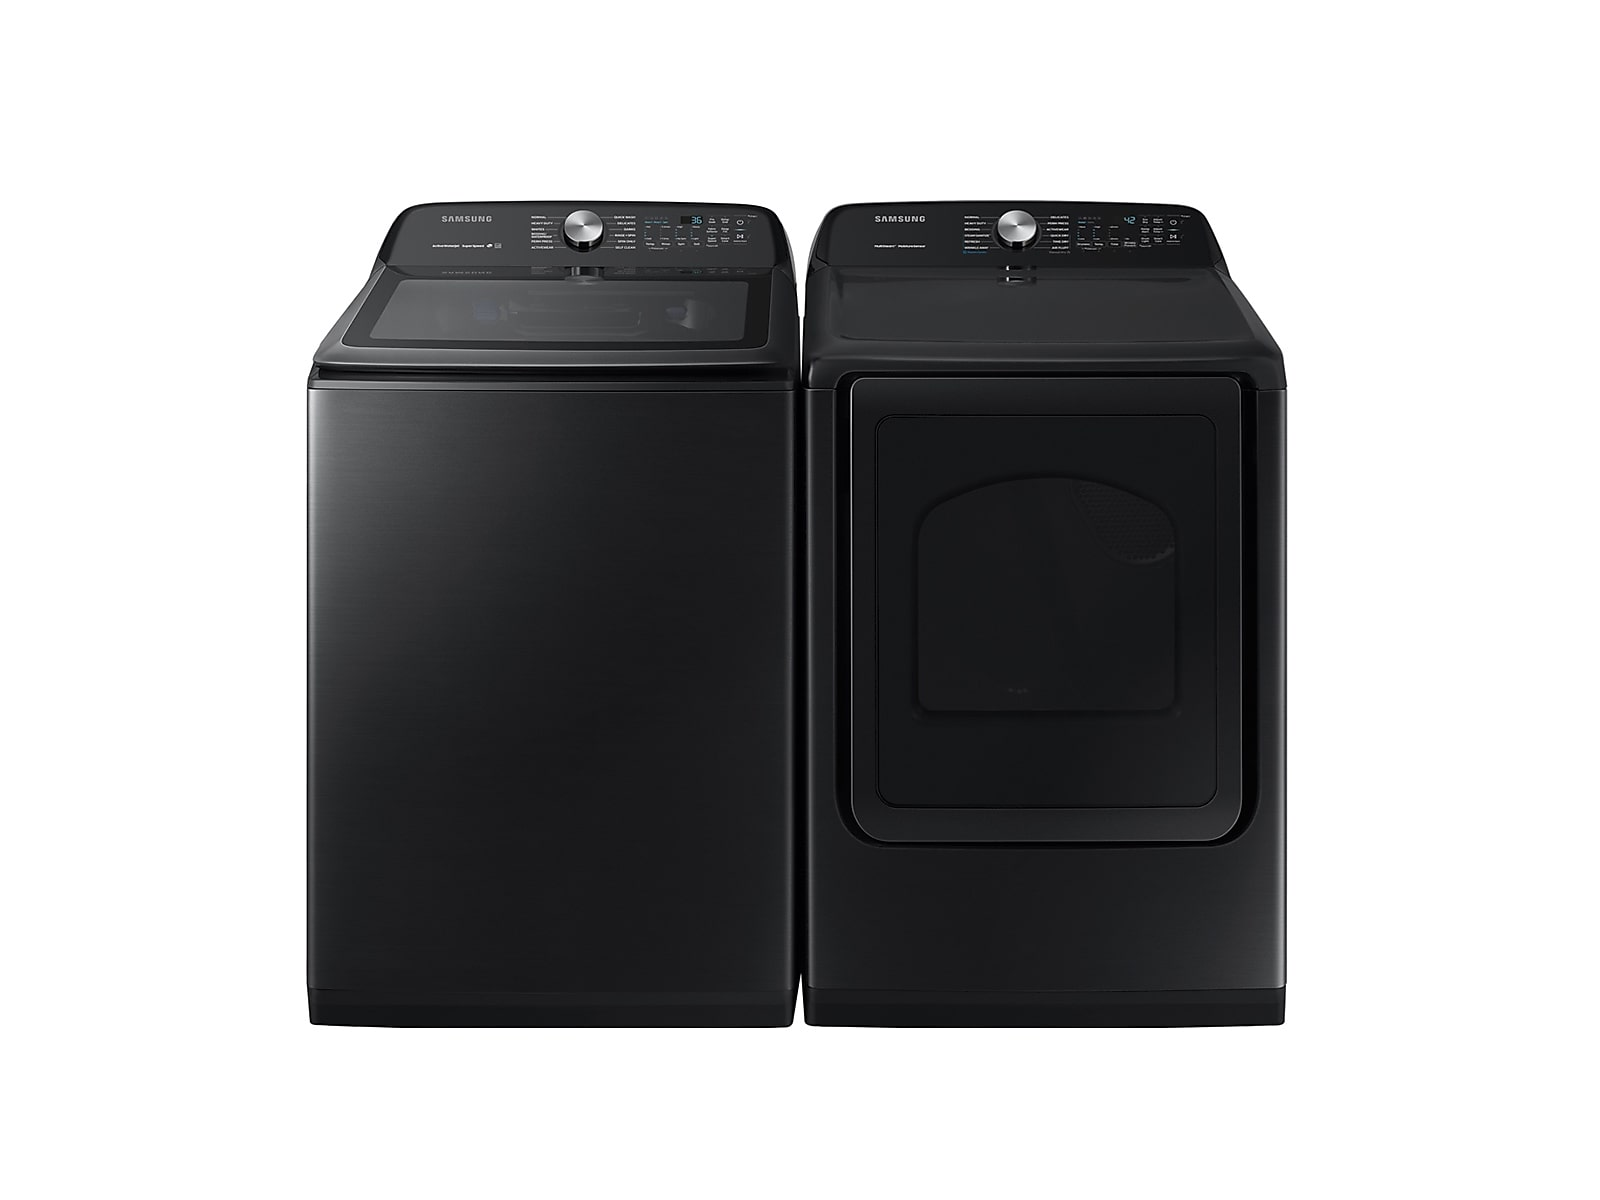 Samsung coupon: Samsung Top Load Washer & Dryer Set with Super Speed and Steam Sanitize+ in Black Stainless Steel(BNDL-1579766350497)